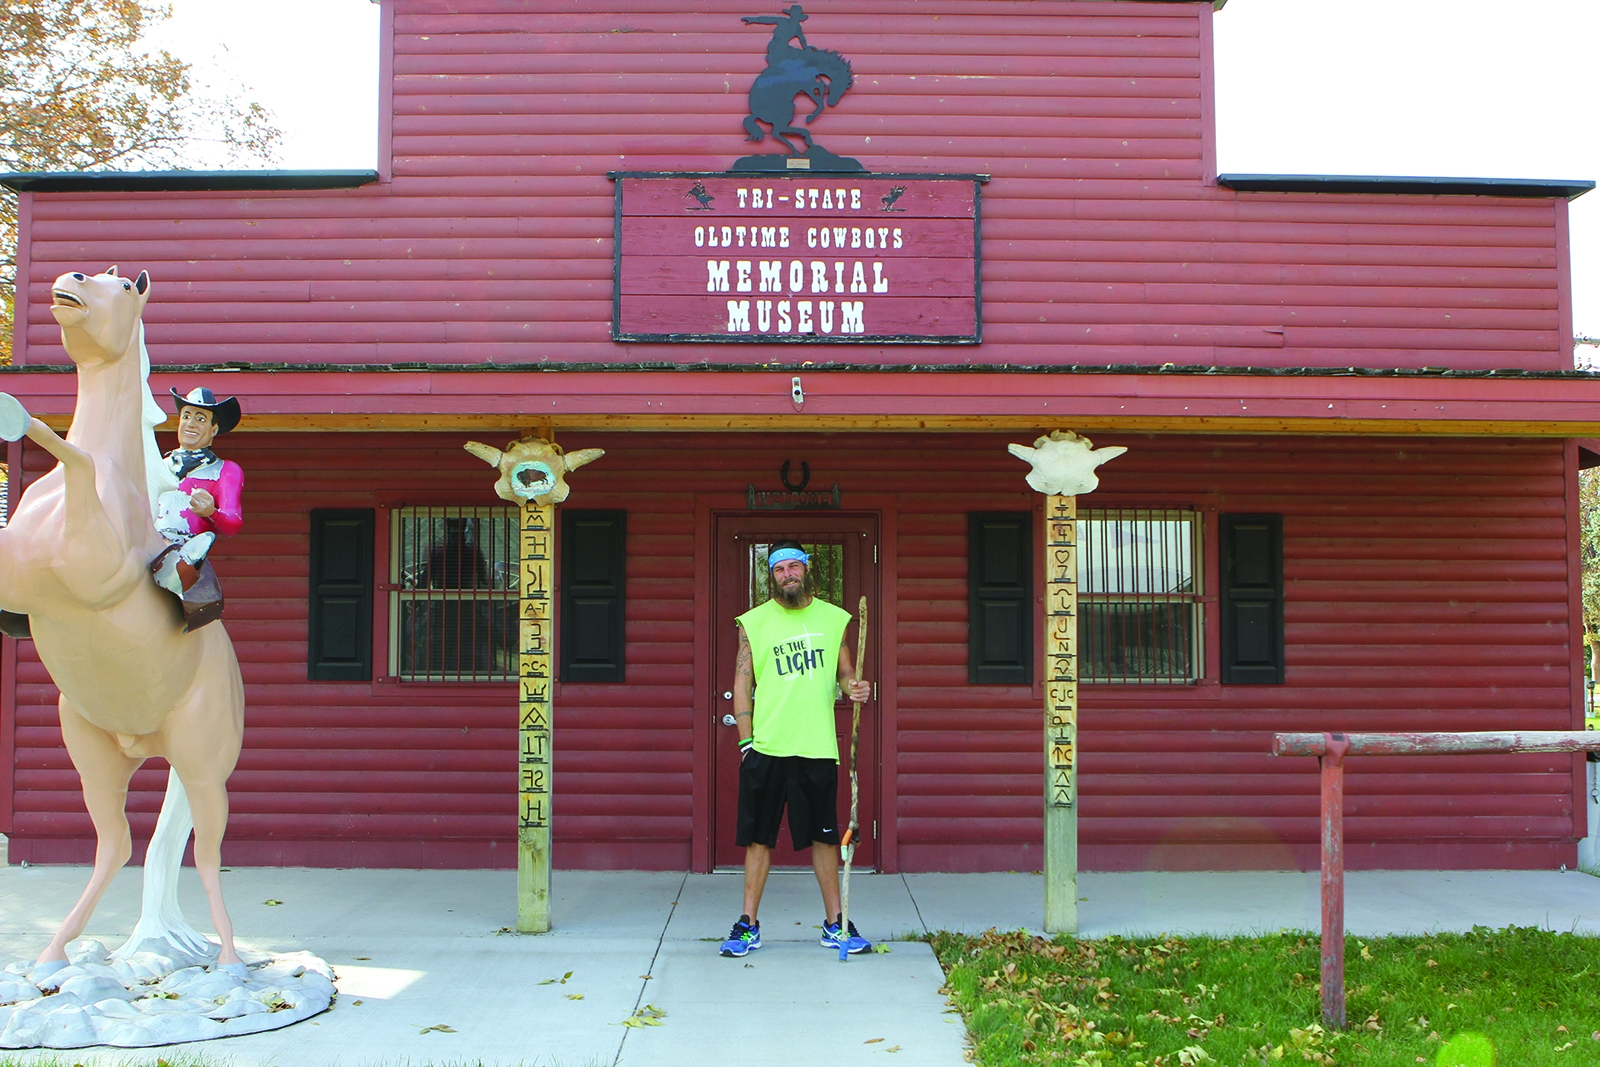 George Ross stands in front of the Tri-State Cowboy Museum in Gordon, where he has stopped for a few days on his cross-country walk from New York to the west coast.